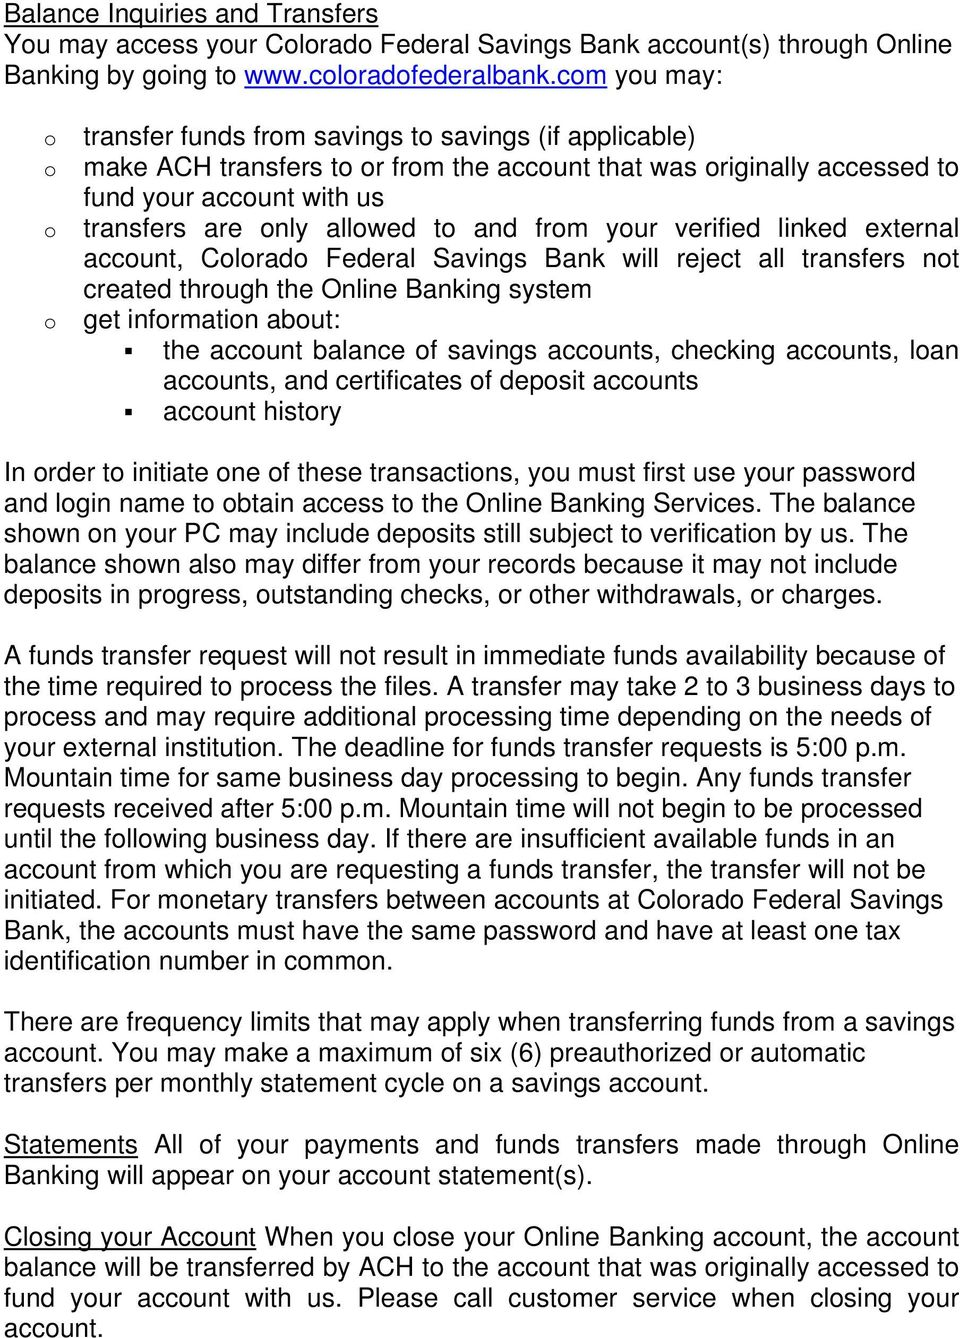 verified linked external accunt, Clrad Federal Savings Bank will reject all transfers nt created thrugh the Online Banking system get infrmatin abut: the accunt balance f savings accunts, checking